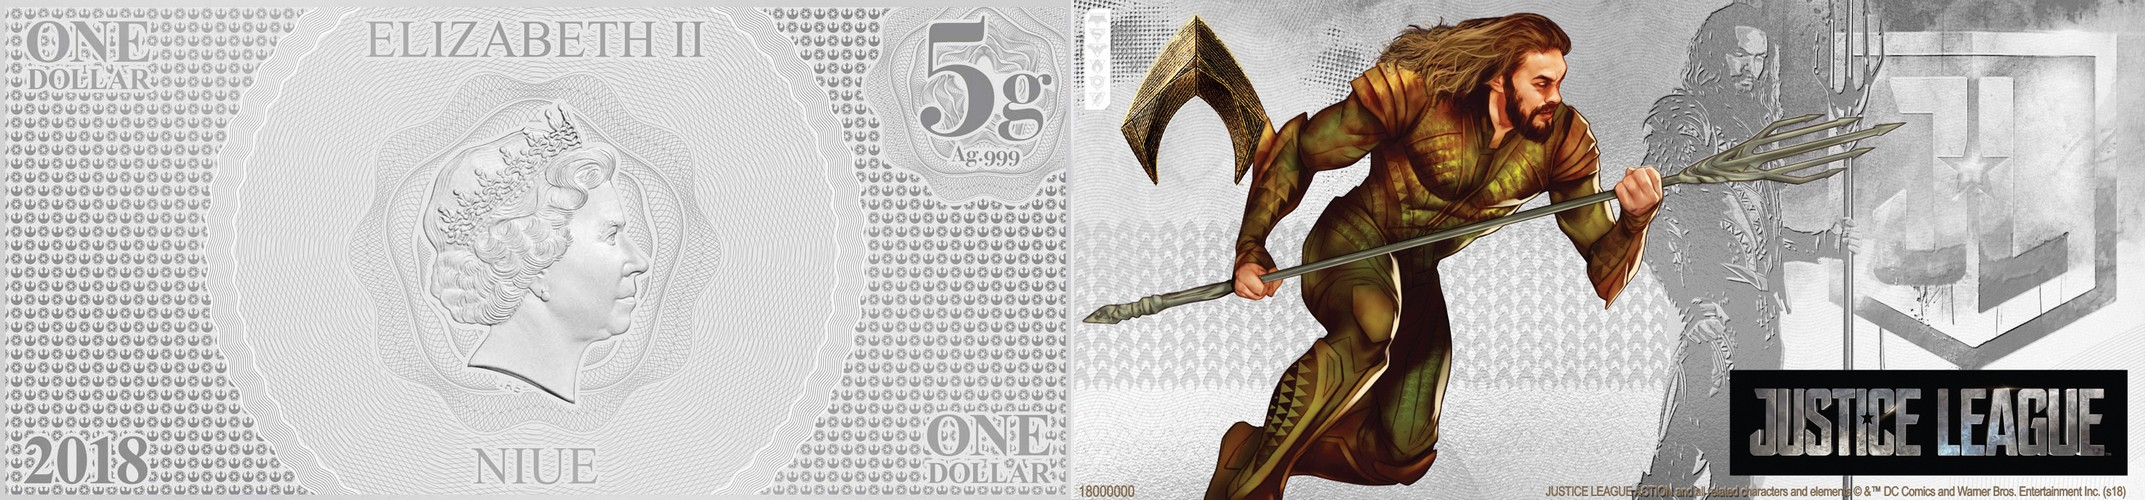 niue 2018 billet ligue de justice aquaman